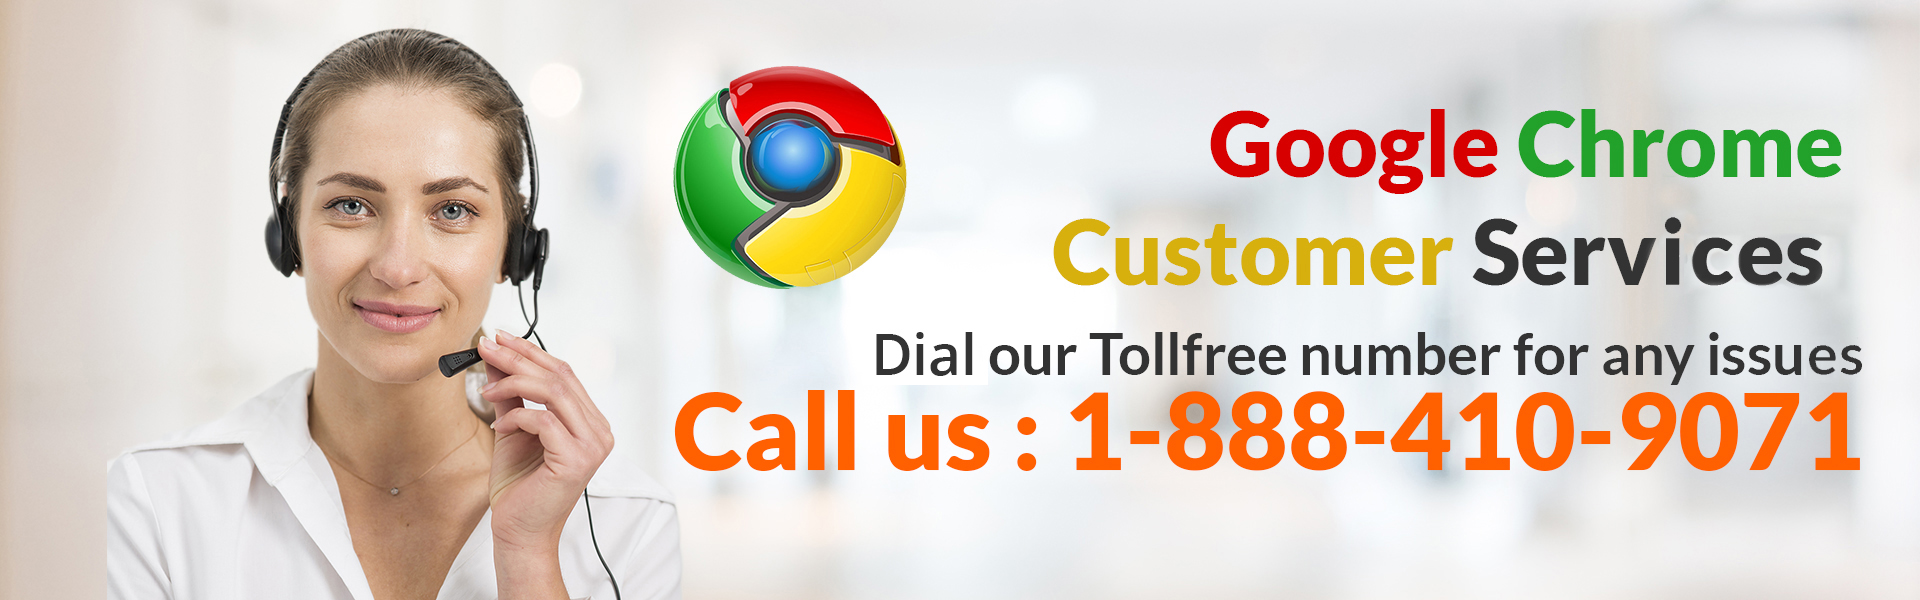 Google Chrome Customer Service 1-888-410-9071